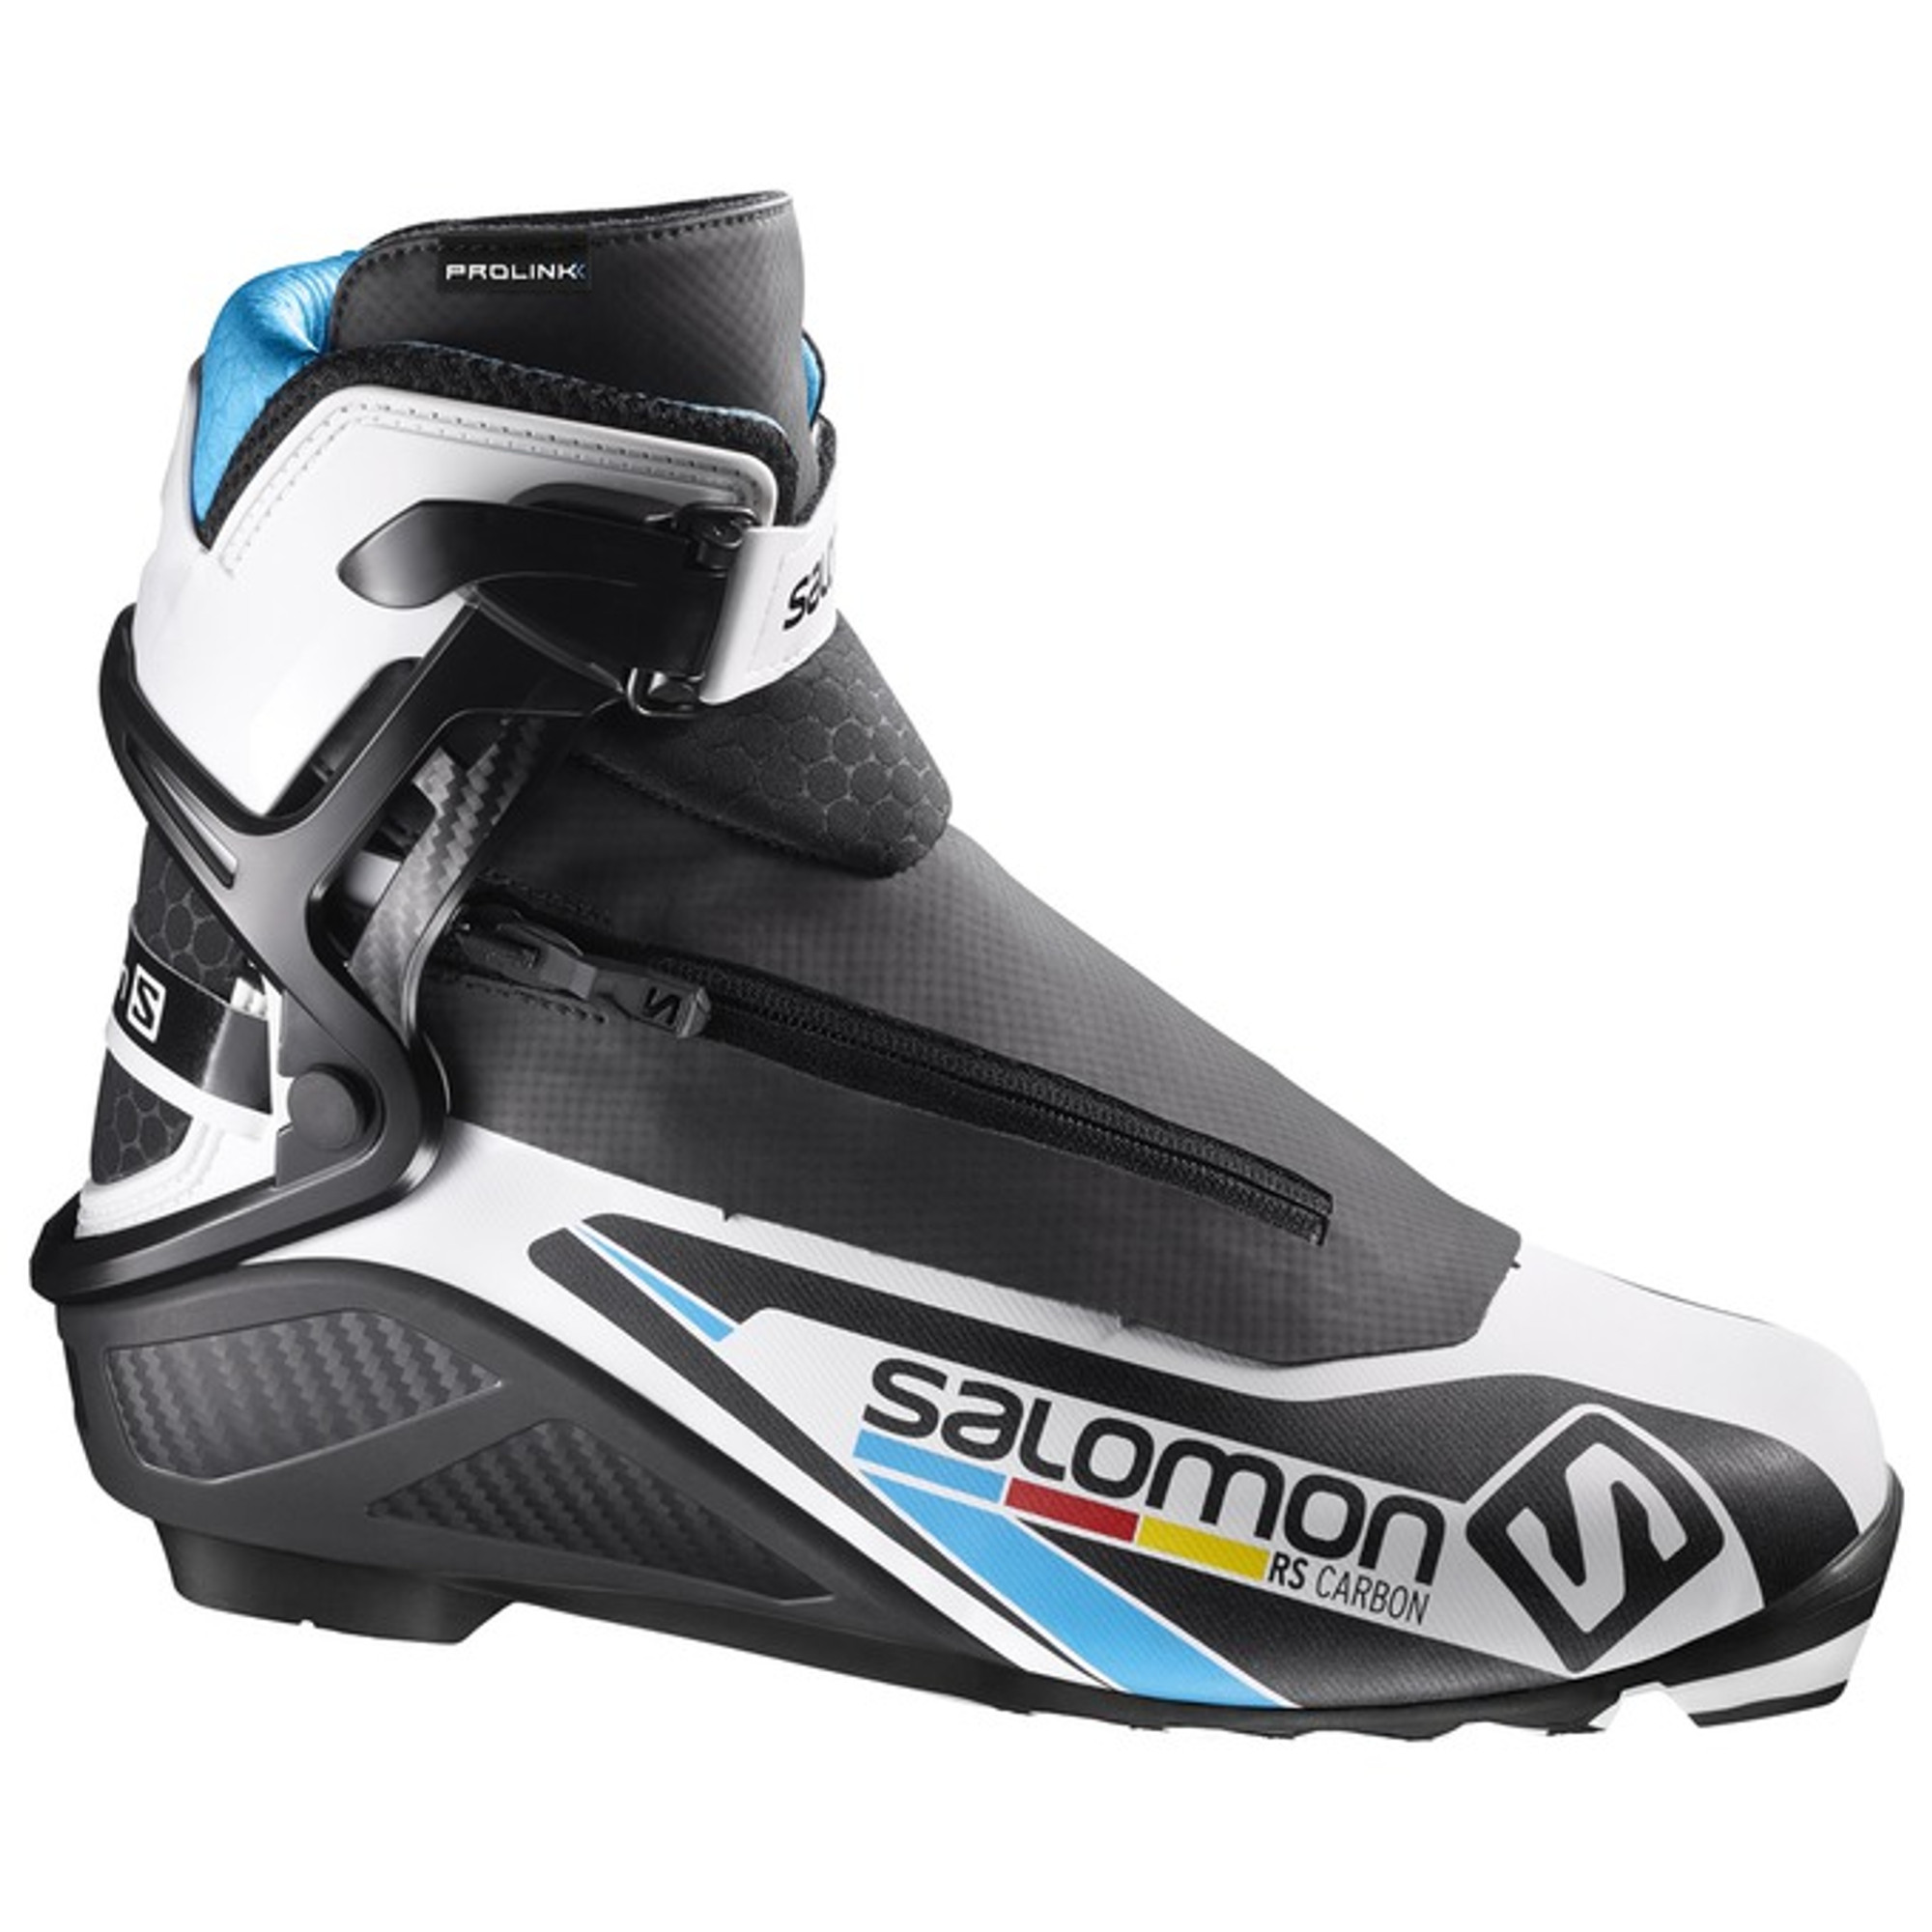 separation shoes fce14 acad5 Salomon RS Carbon Prolink Skate Boots - RollerskiShop.com LLC